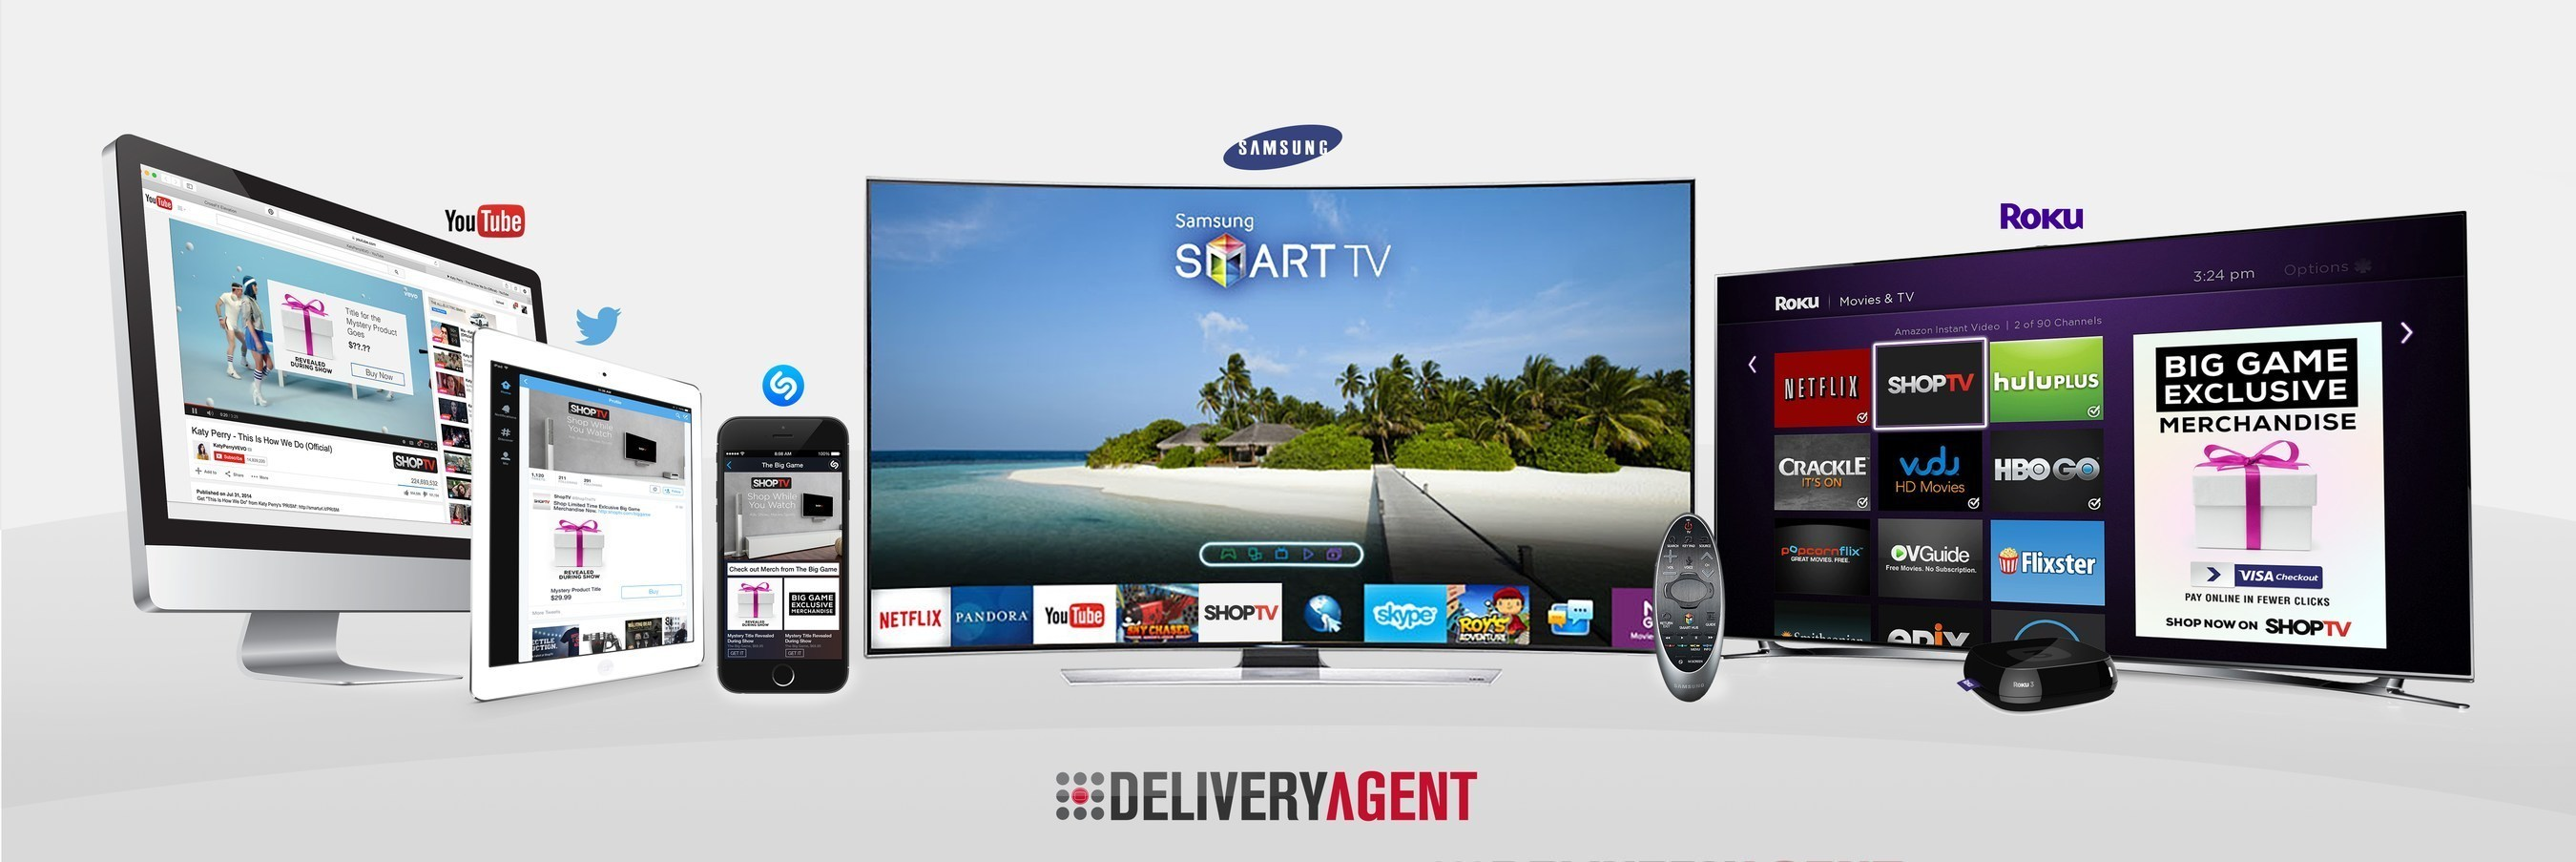 Delivery Agent's ShopTV(R) Television Commerce Platform Powers the First Shoppable Halftime Show with Samsung, Twitter, Roku, Shazam, Visa and YouTube